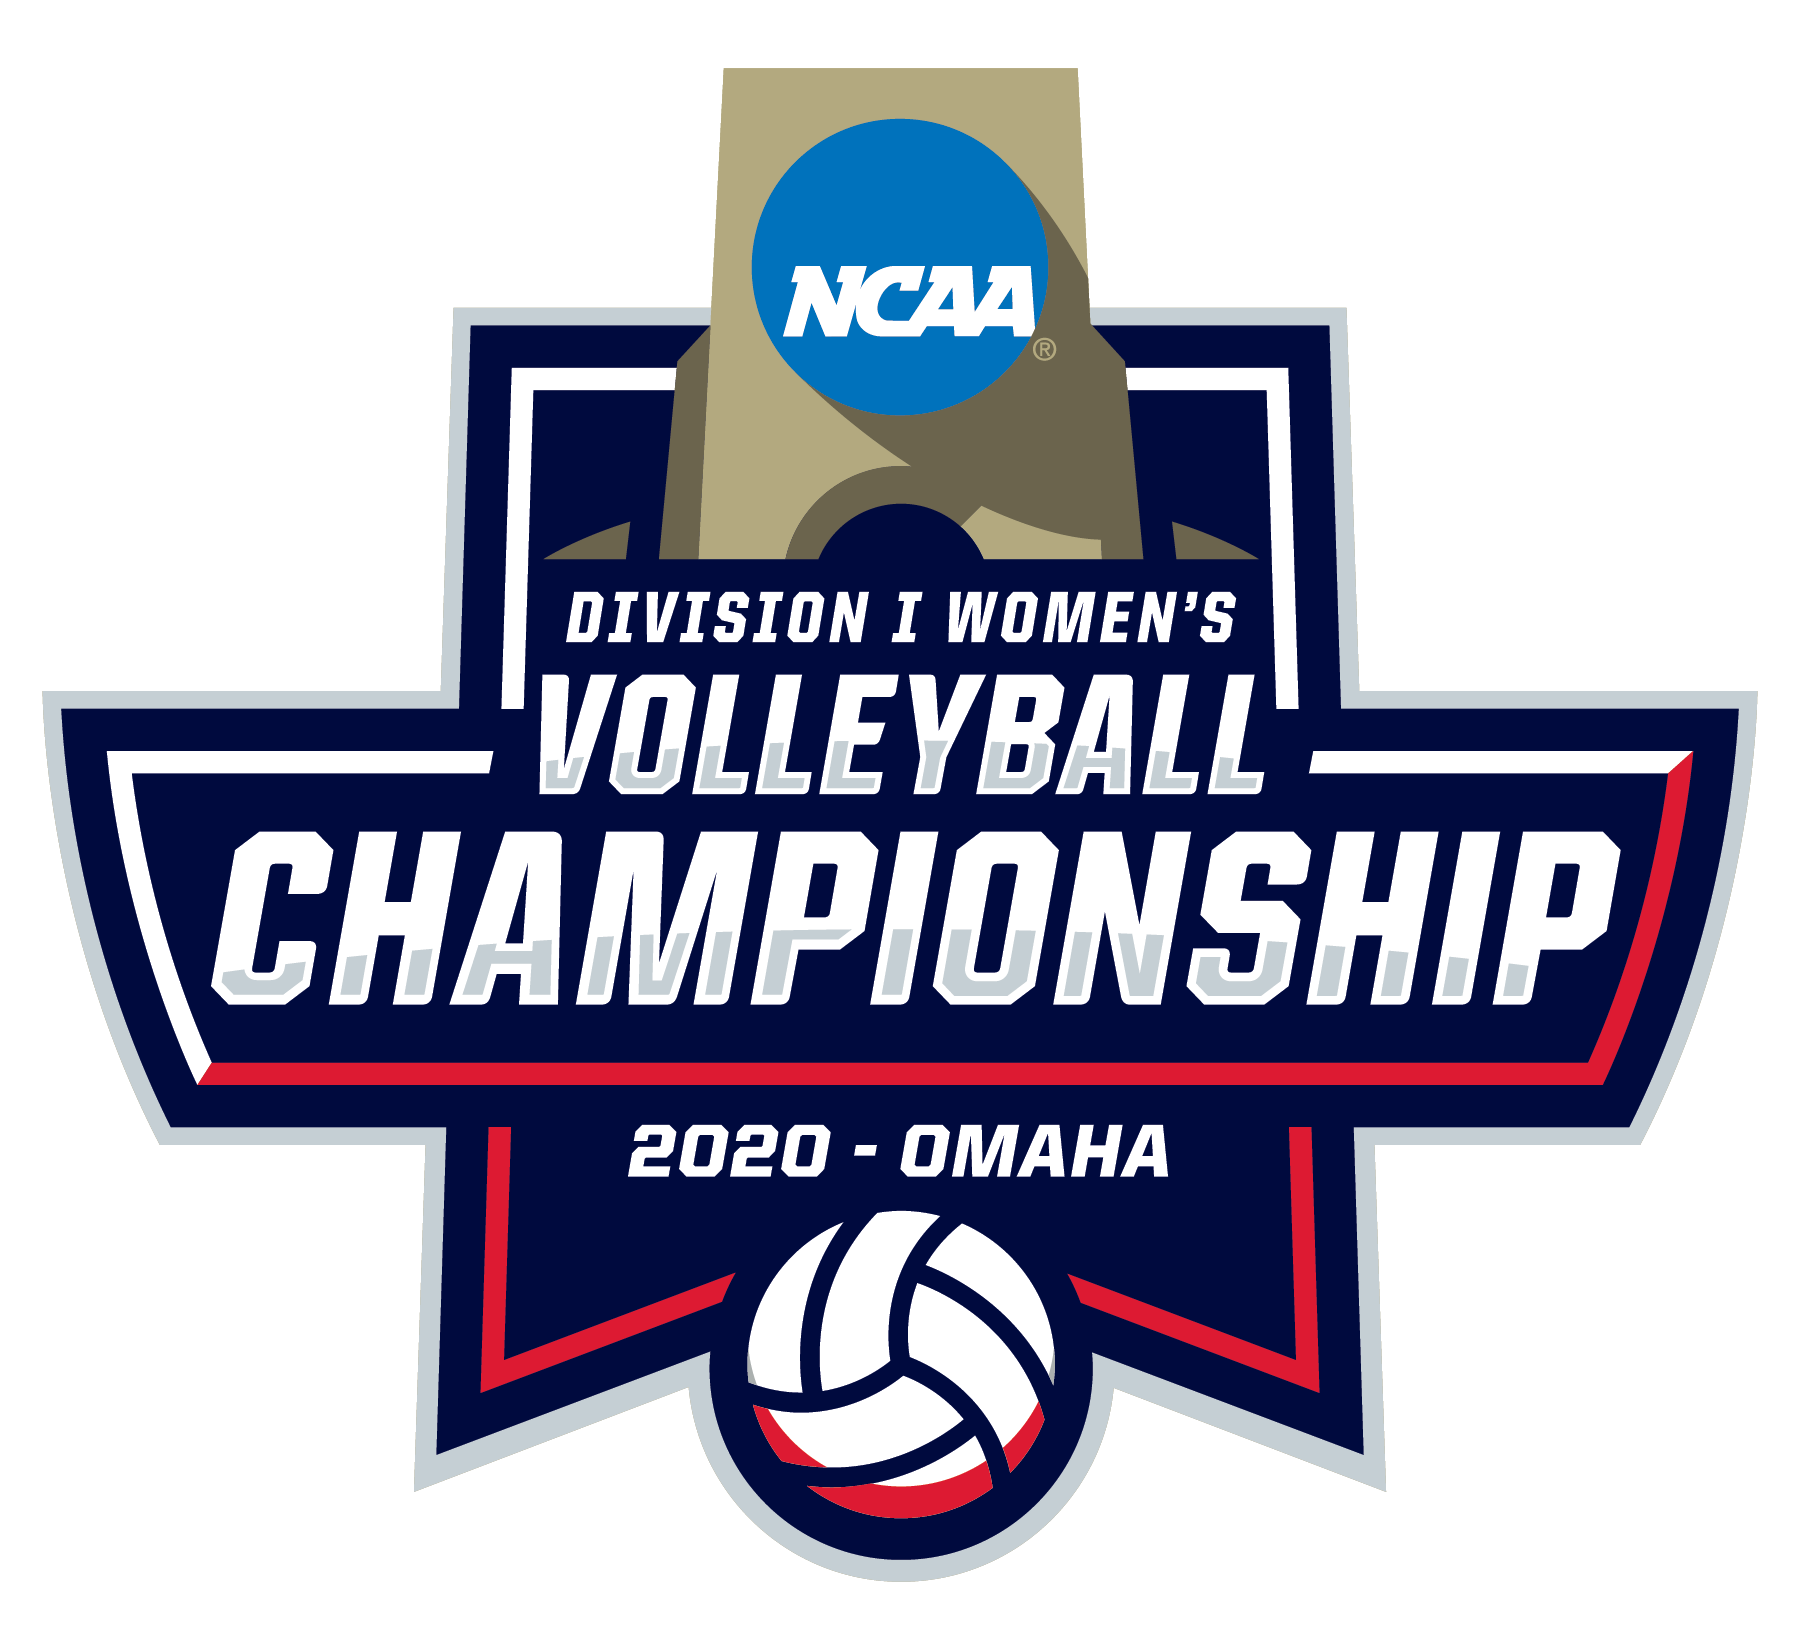 2020 Division I Women's Volleyball